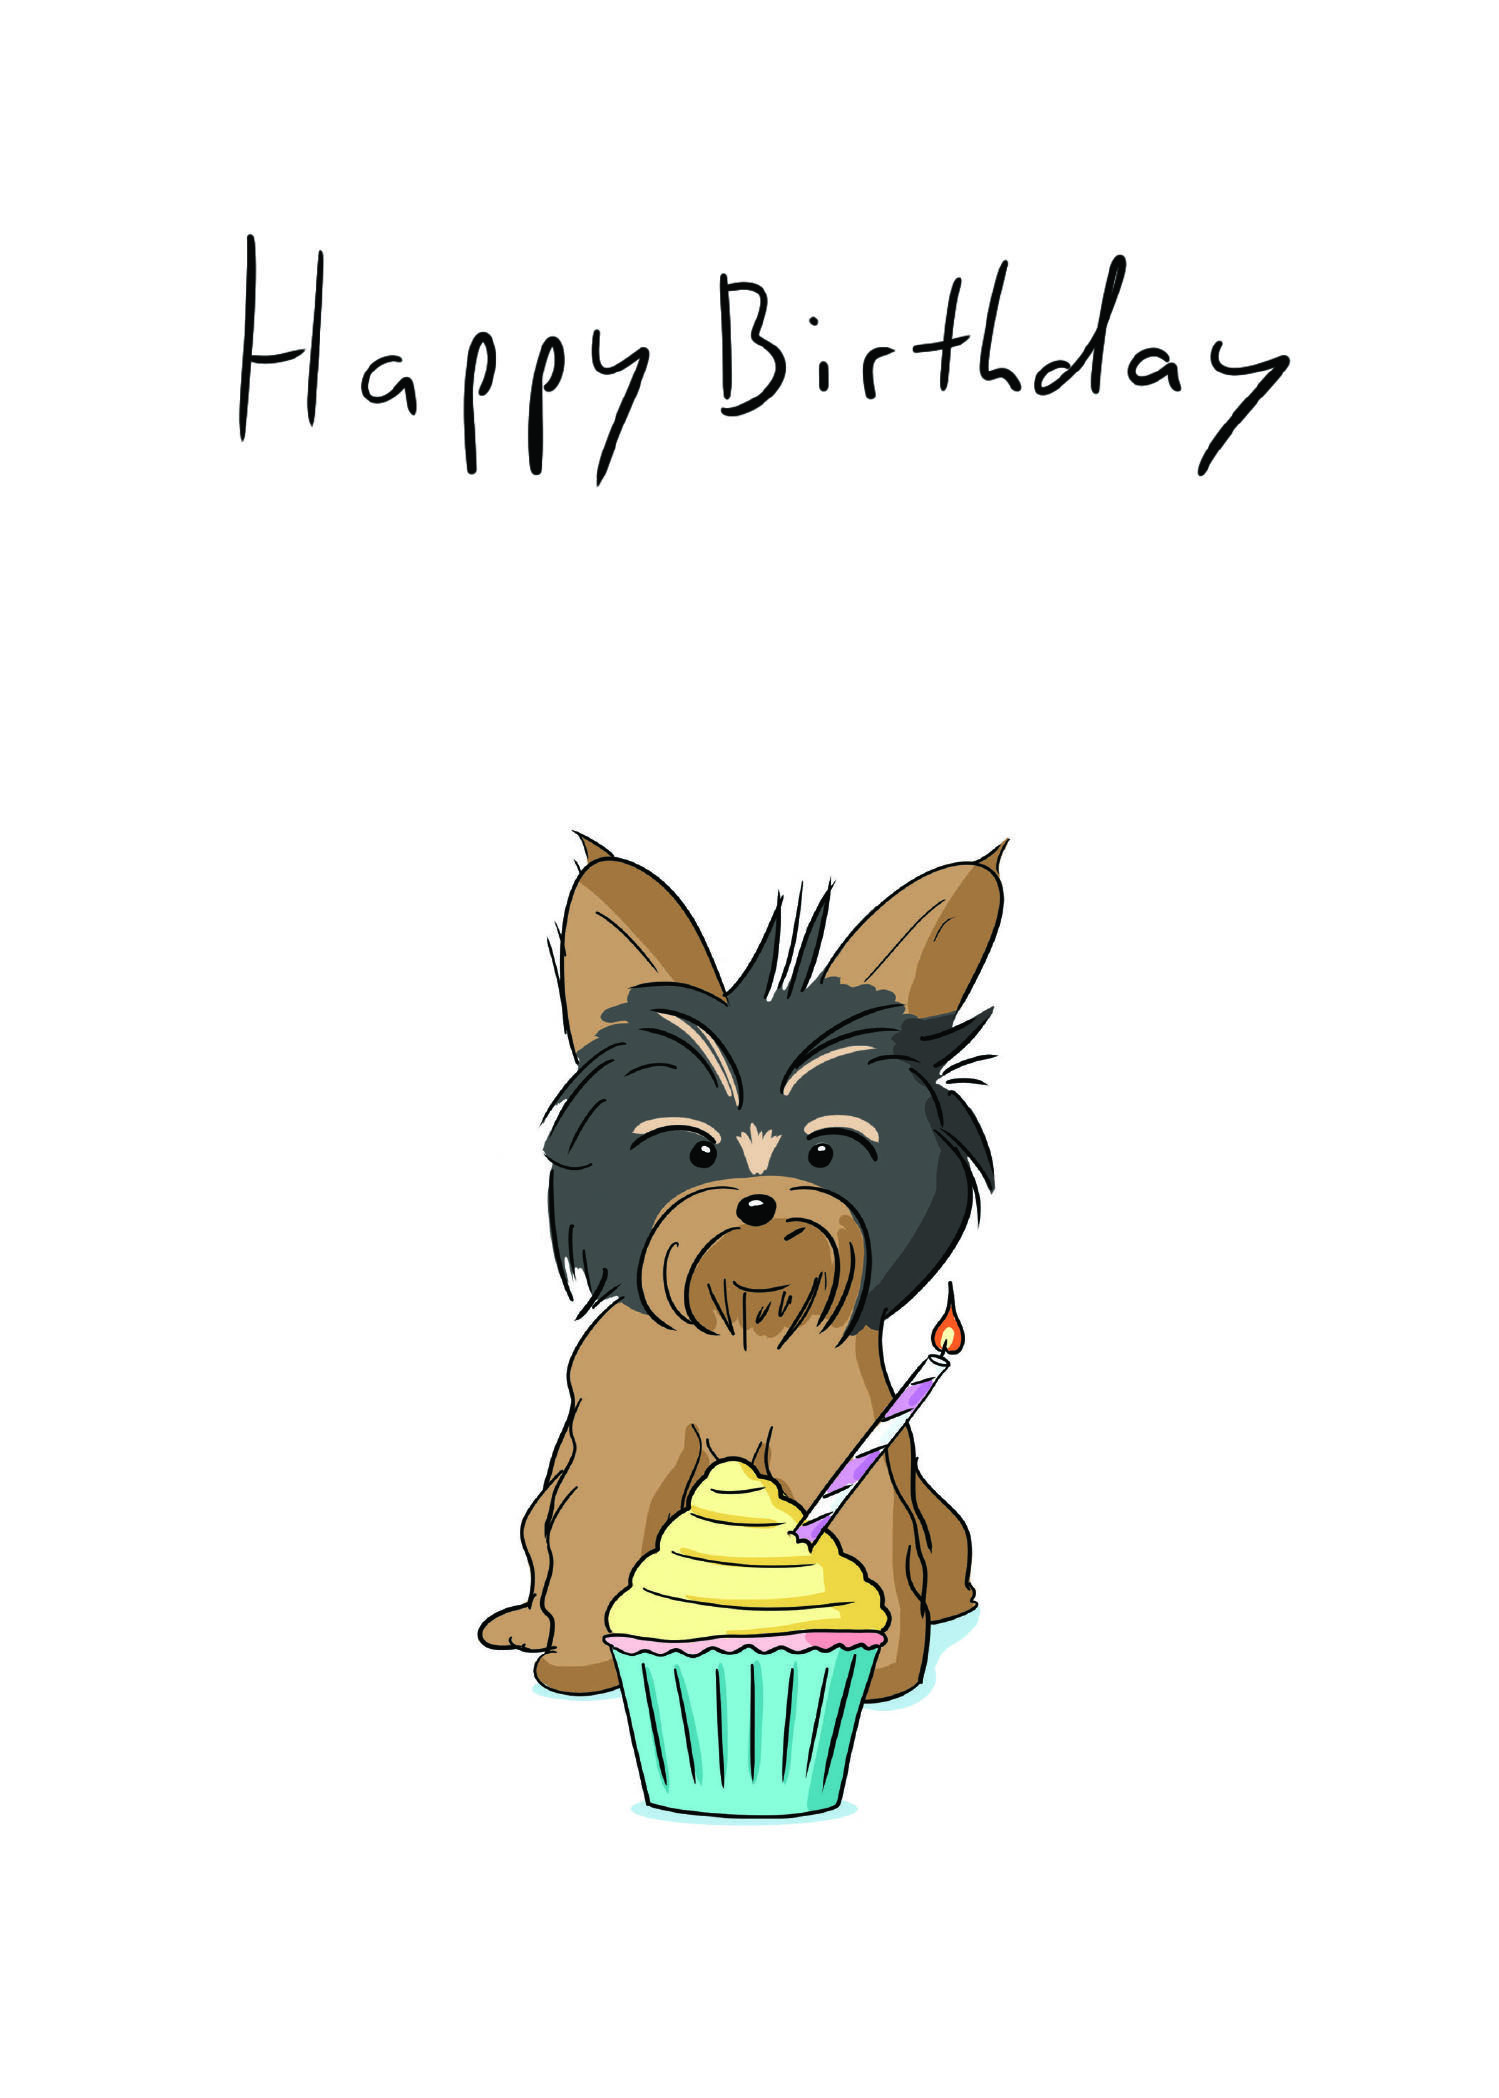 Yorkie Birthday Card Had A Good Time Drawing This Little Guy But Coloring Him In Was Challenging Card Greetingcar Happy Birthday Dog Birthday Cards Cards